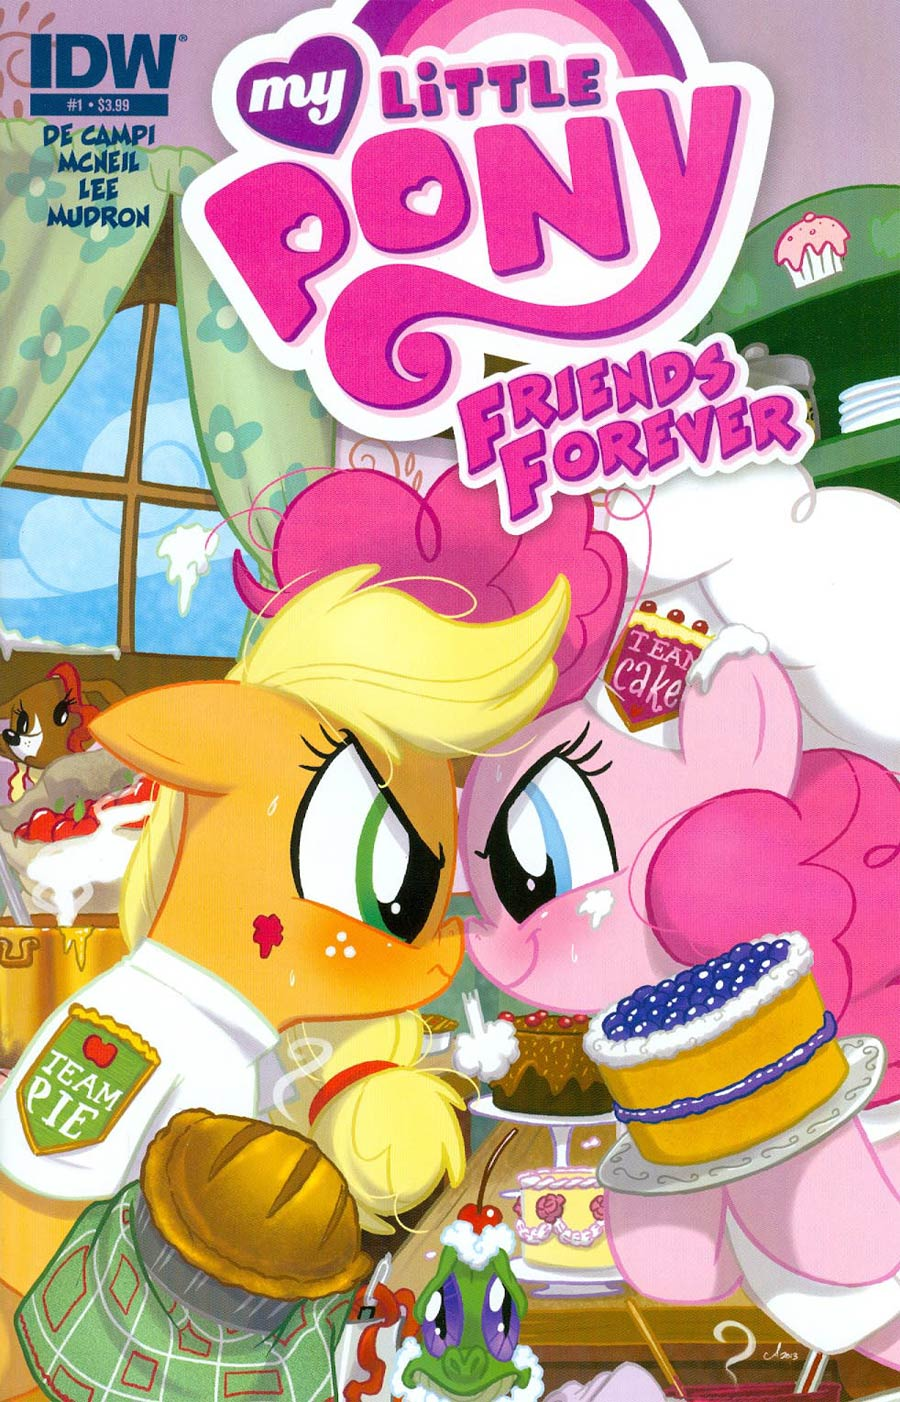 My Little Pony Friends Forever #1 Cover A Regular Amy Mebberson Cover